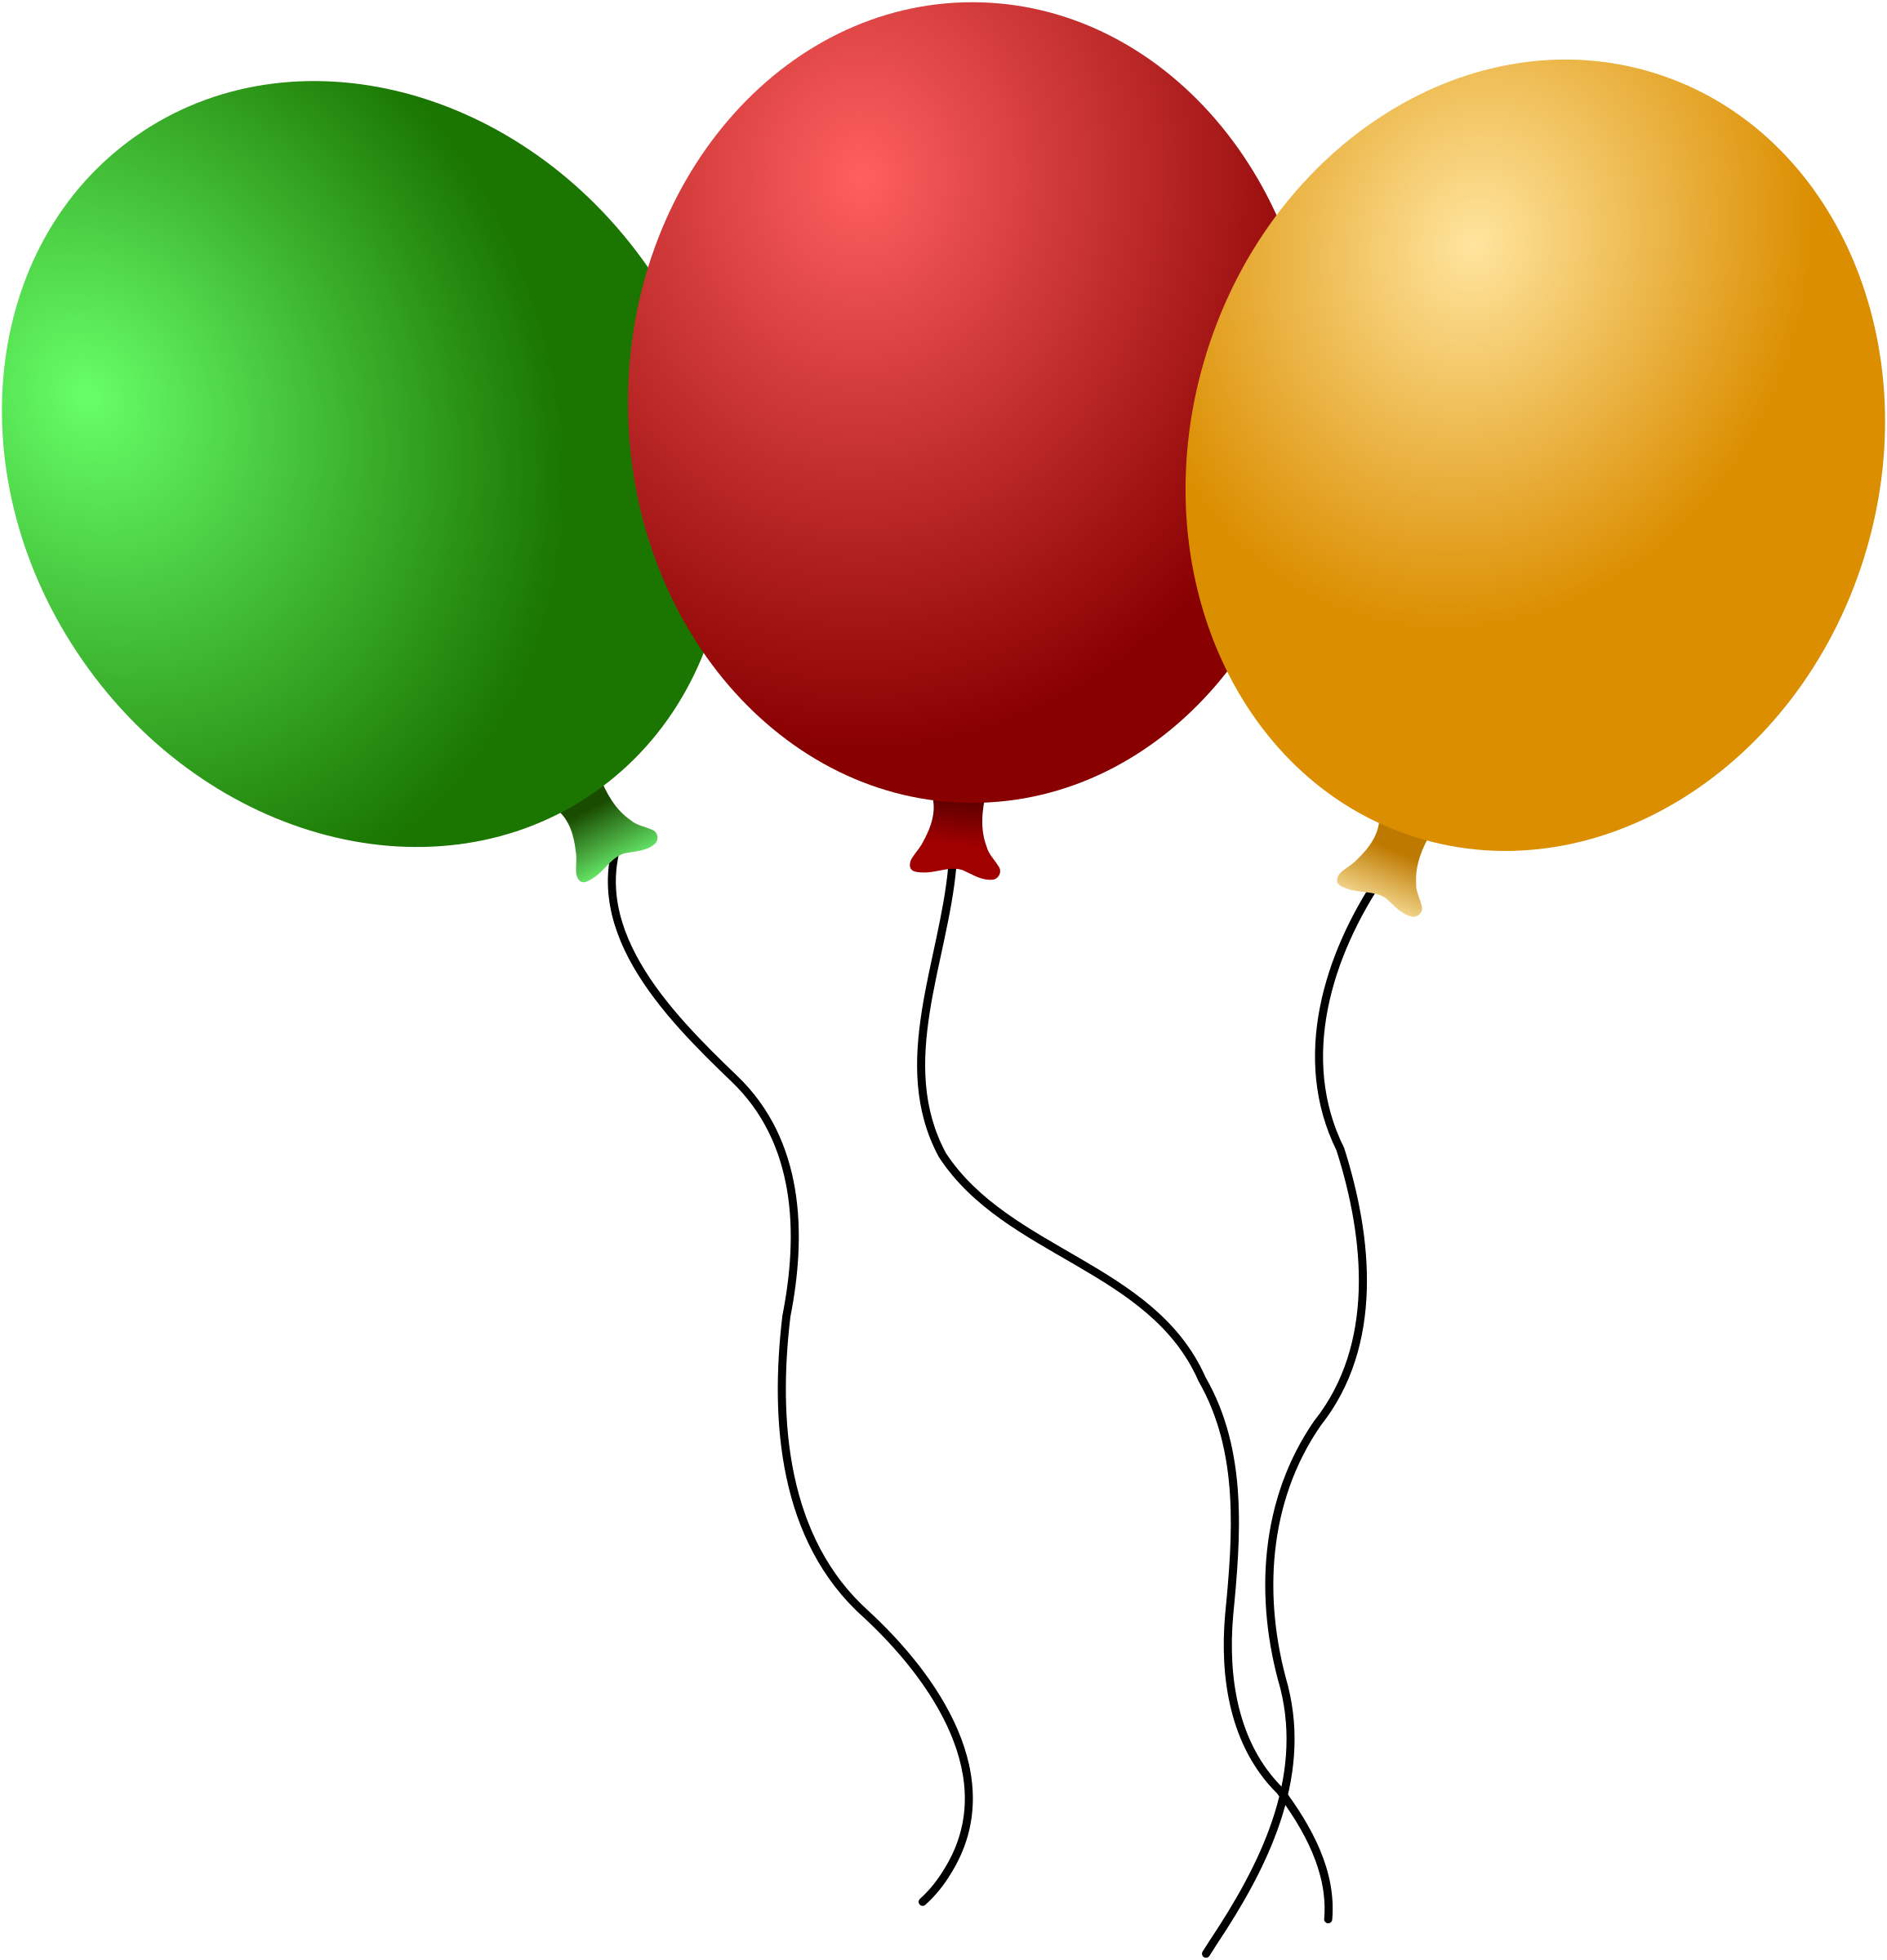 Balloons big image png. Clipart balloon animation